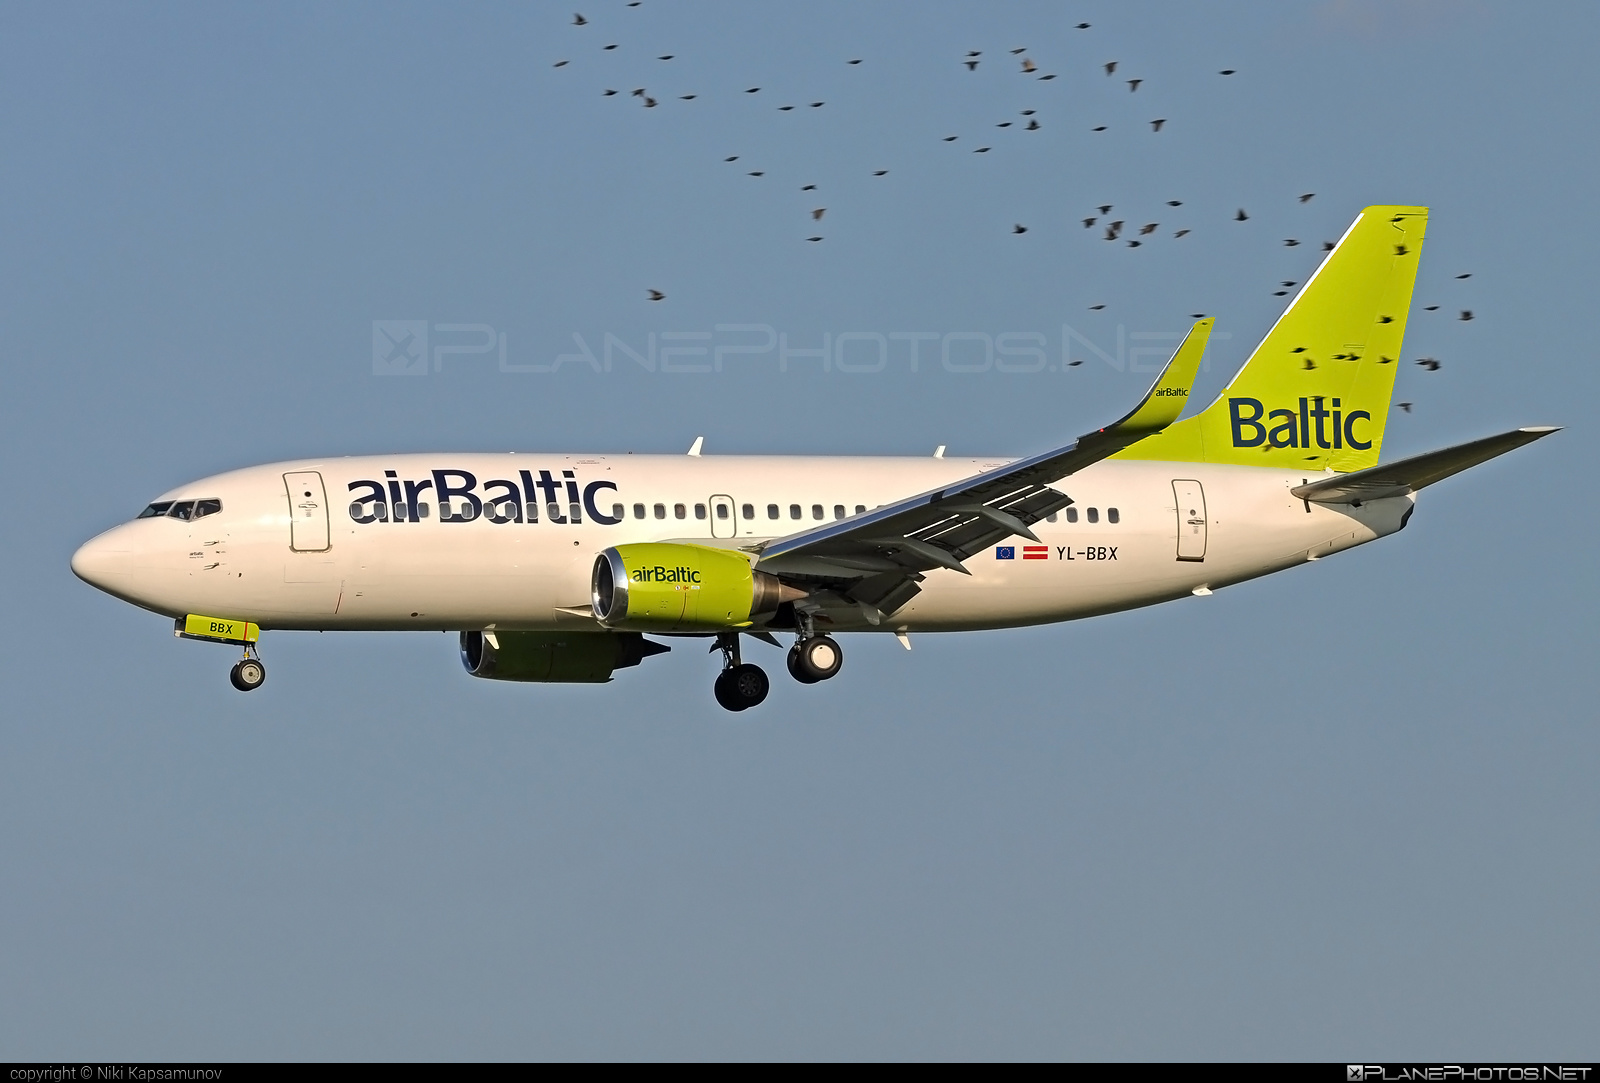 Boeing 737-300 - YL-BBX operated by Air Baltic #airbaltic #b737 #boeing #boeing737